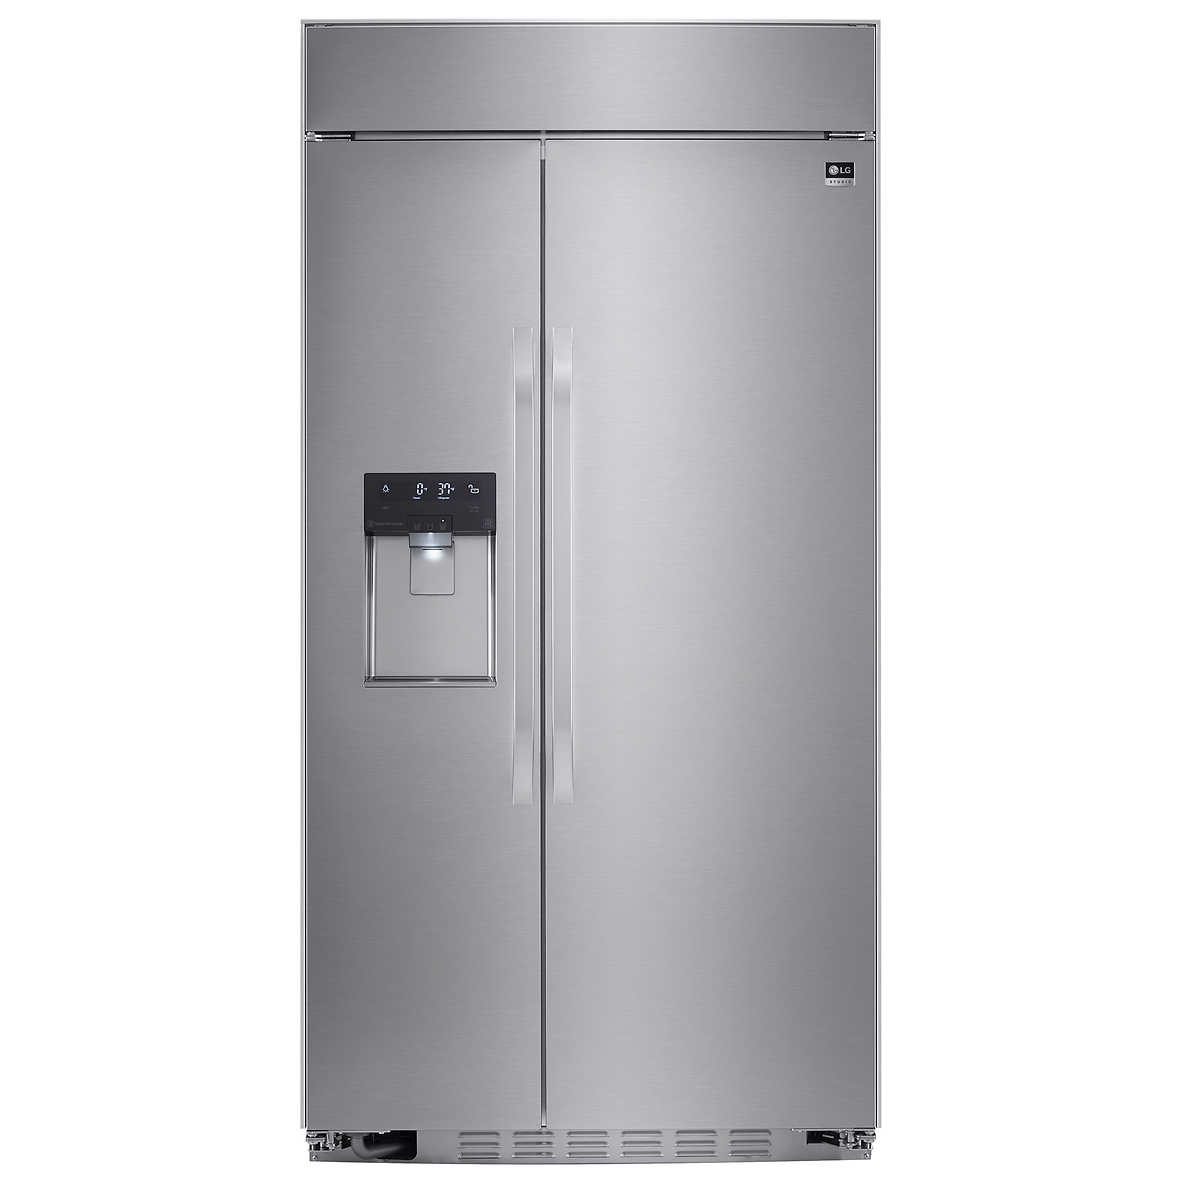 Ge 30 inch side by side white refrigerator - Lg Studio 42 Built In 25 6cuft Side By Side Refrigerator In